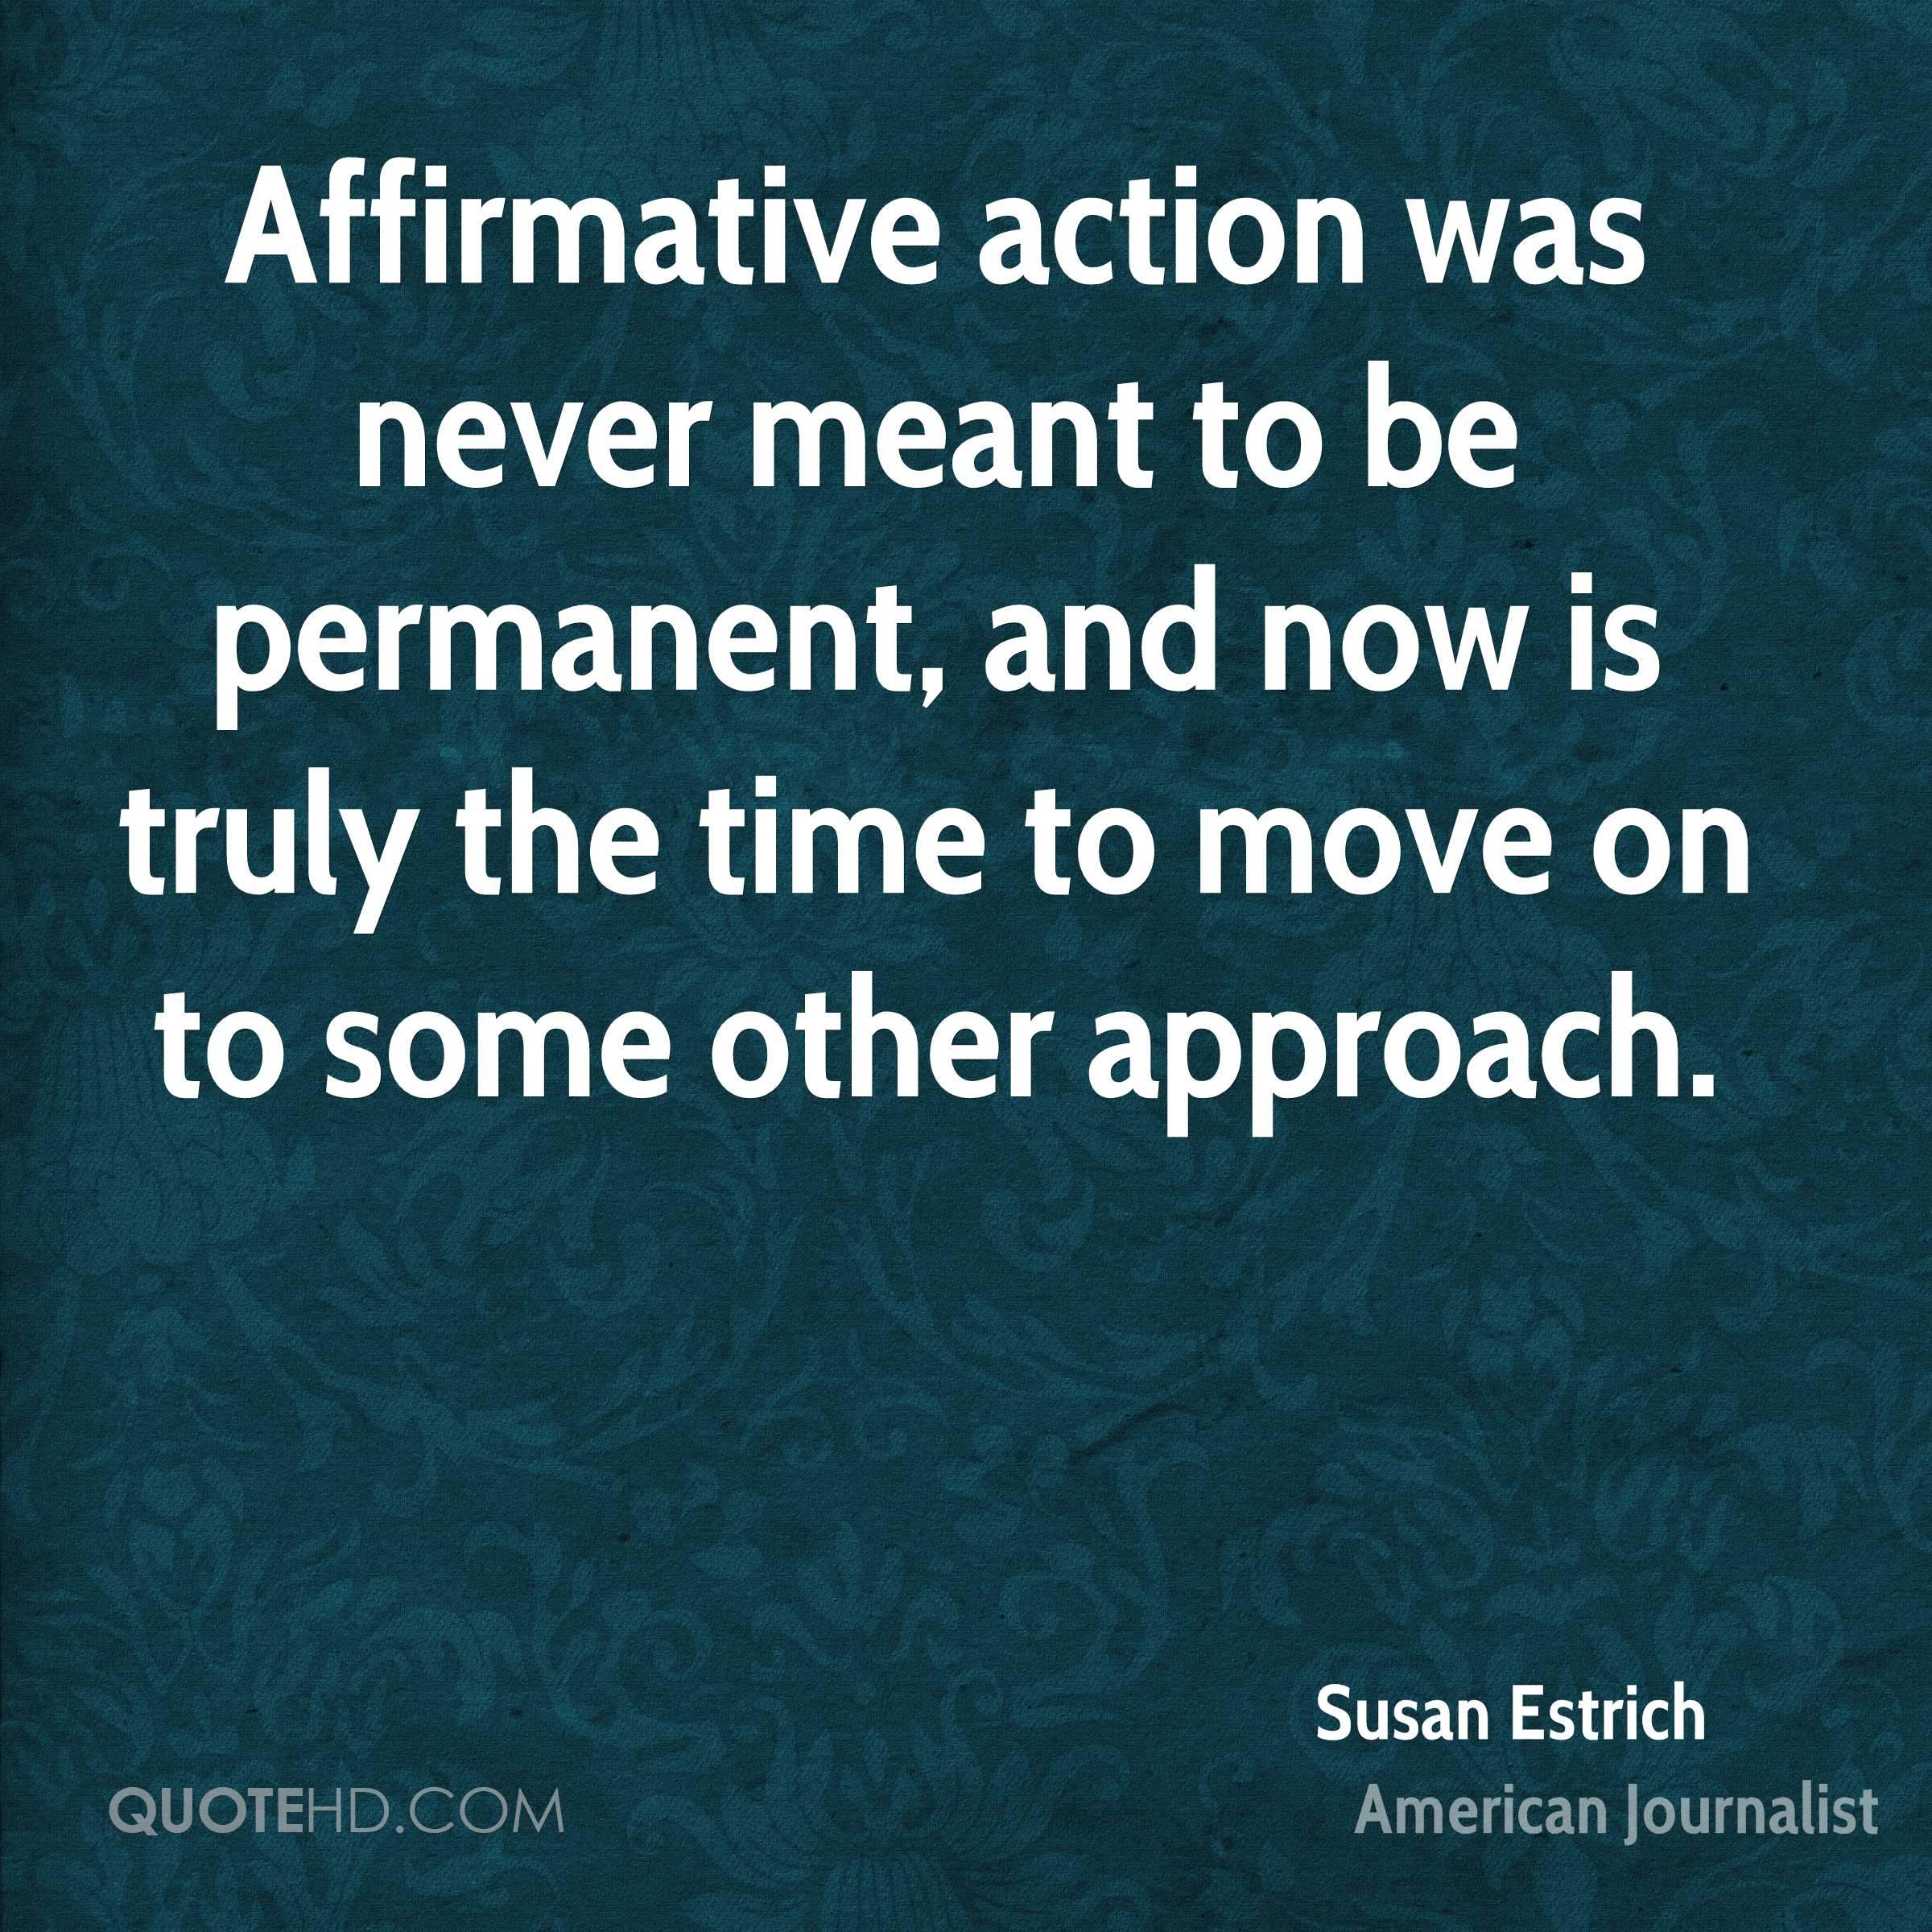 Affirmative action was never meant to be permanent, and now is truly the time to move on to some other approach.